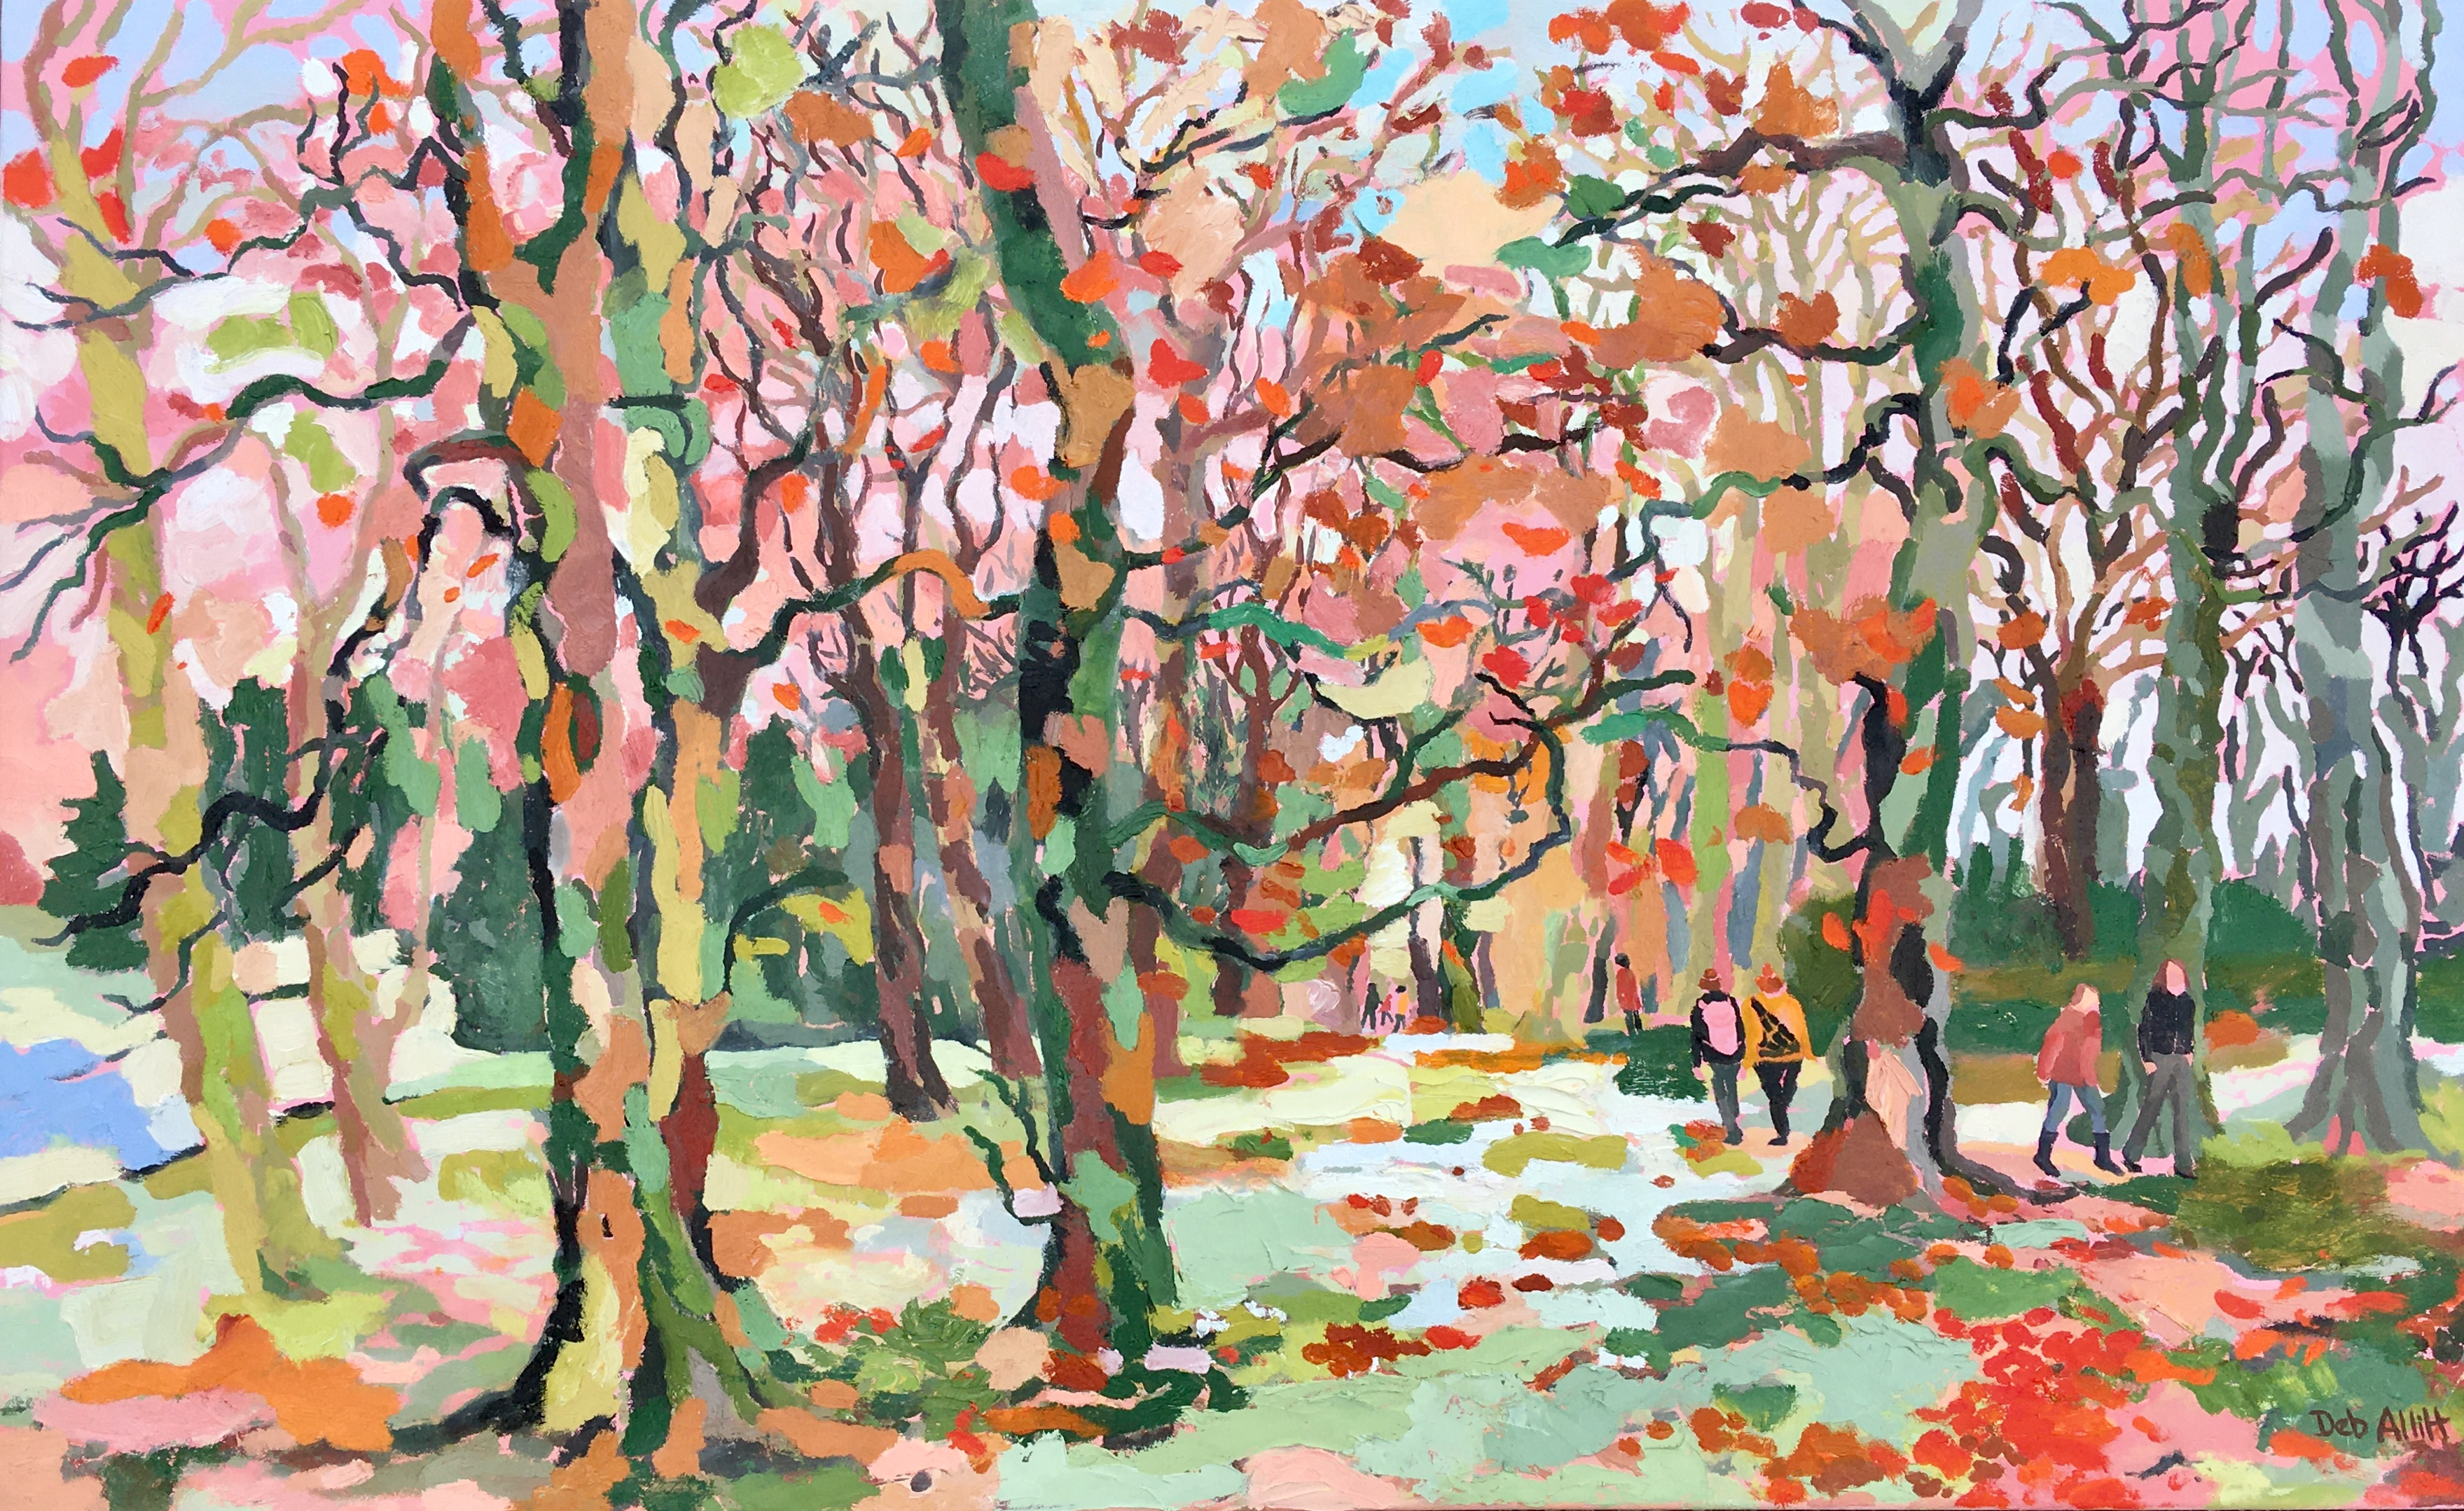 Autumn Colours in the Woods. Oil on canvas. 70 x 113 cm.